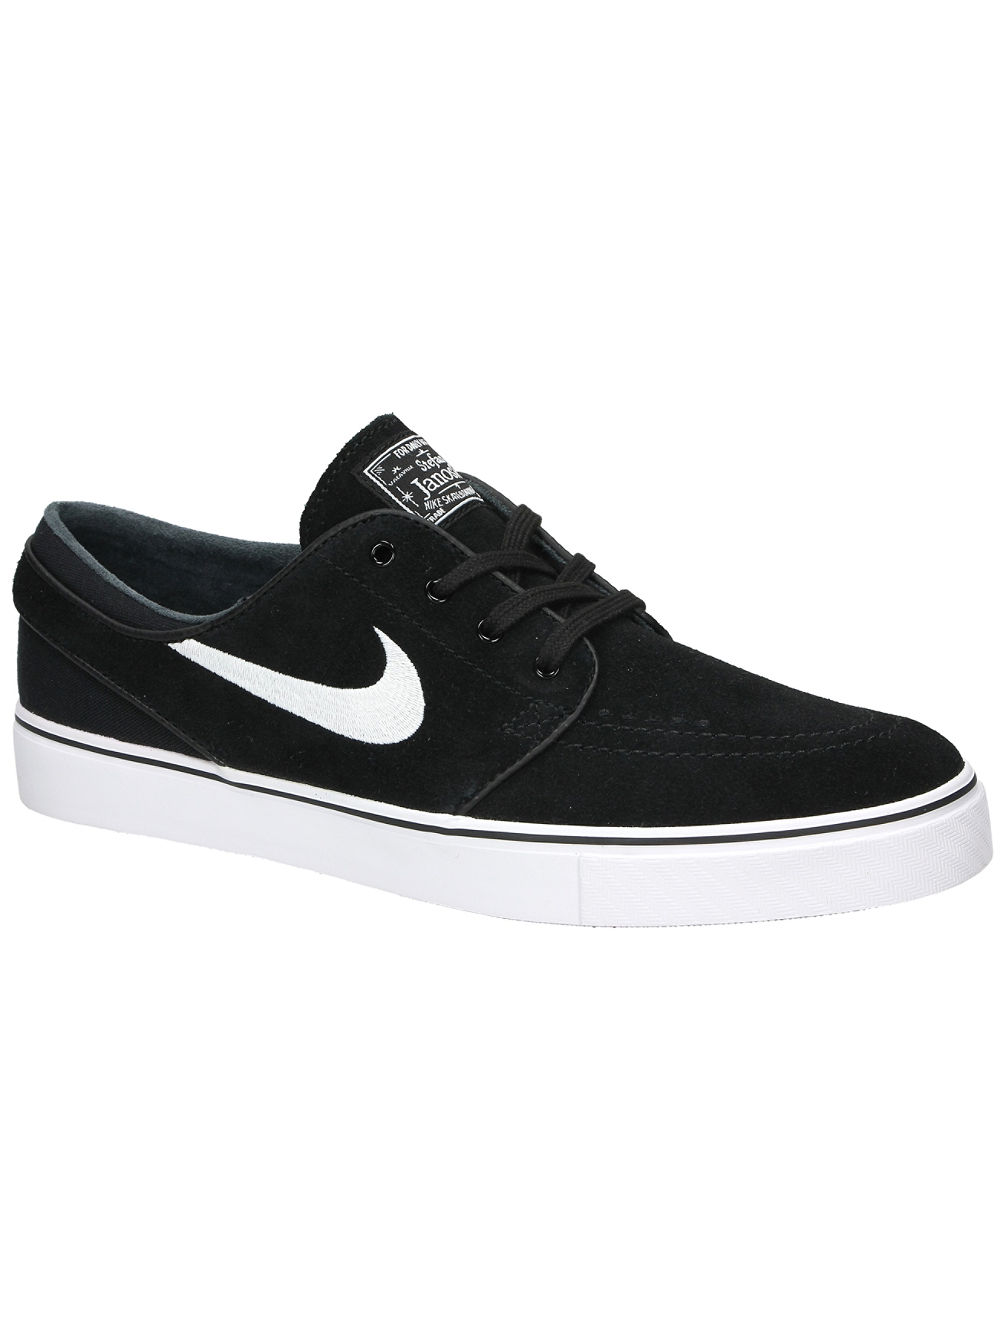 Buy Nike Zoom Stefan Janoski Skate Shoes online at blue-tomato.com c976a70308dc